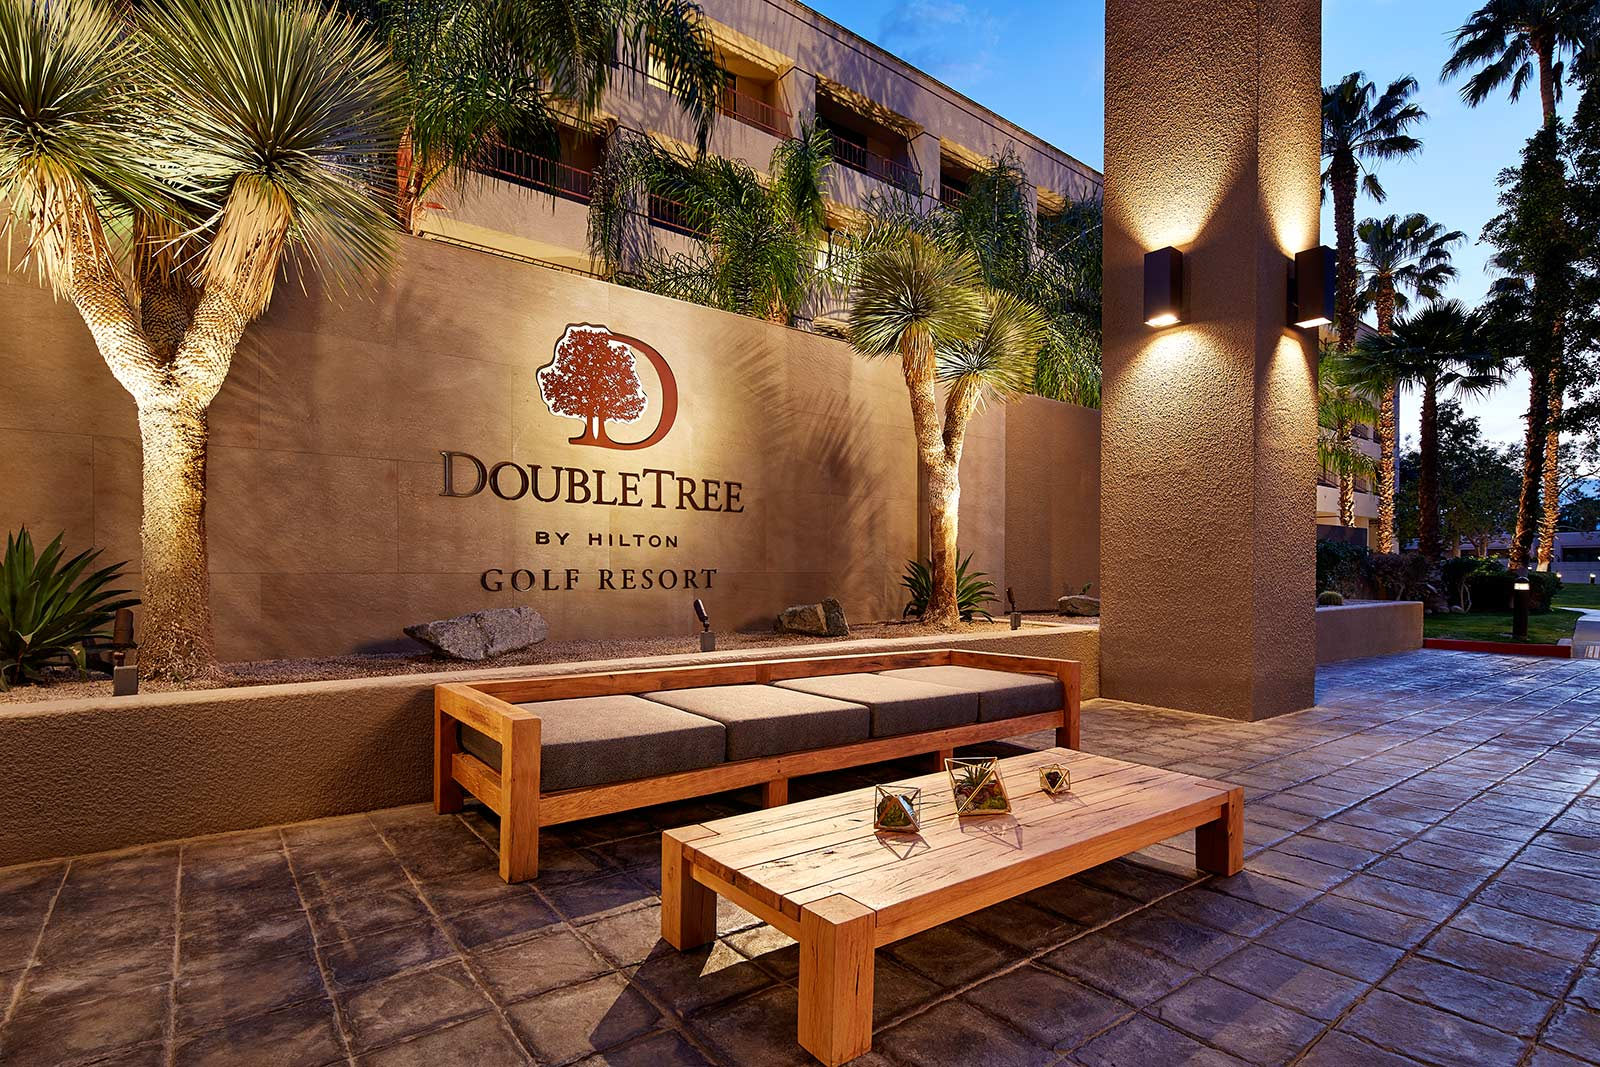 Photos Of Doubletree Palm Springs Golf Resort